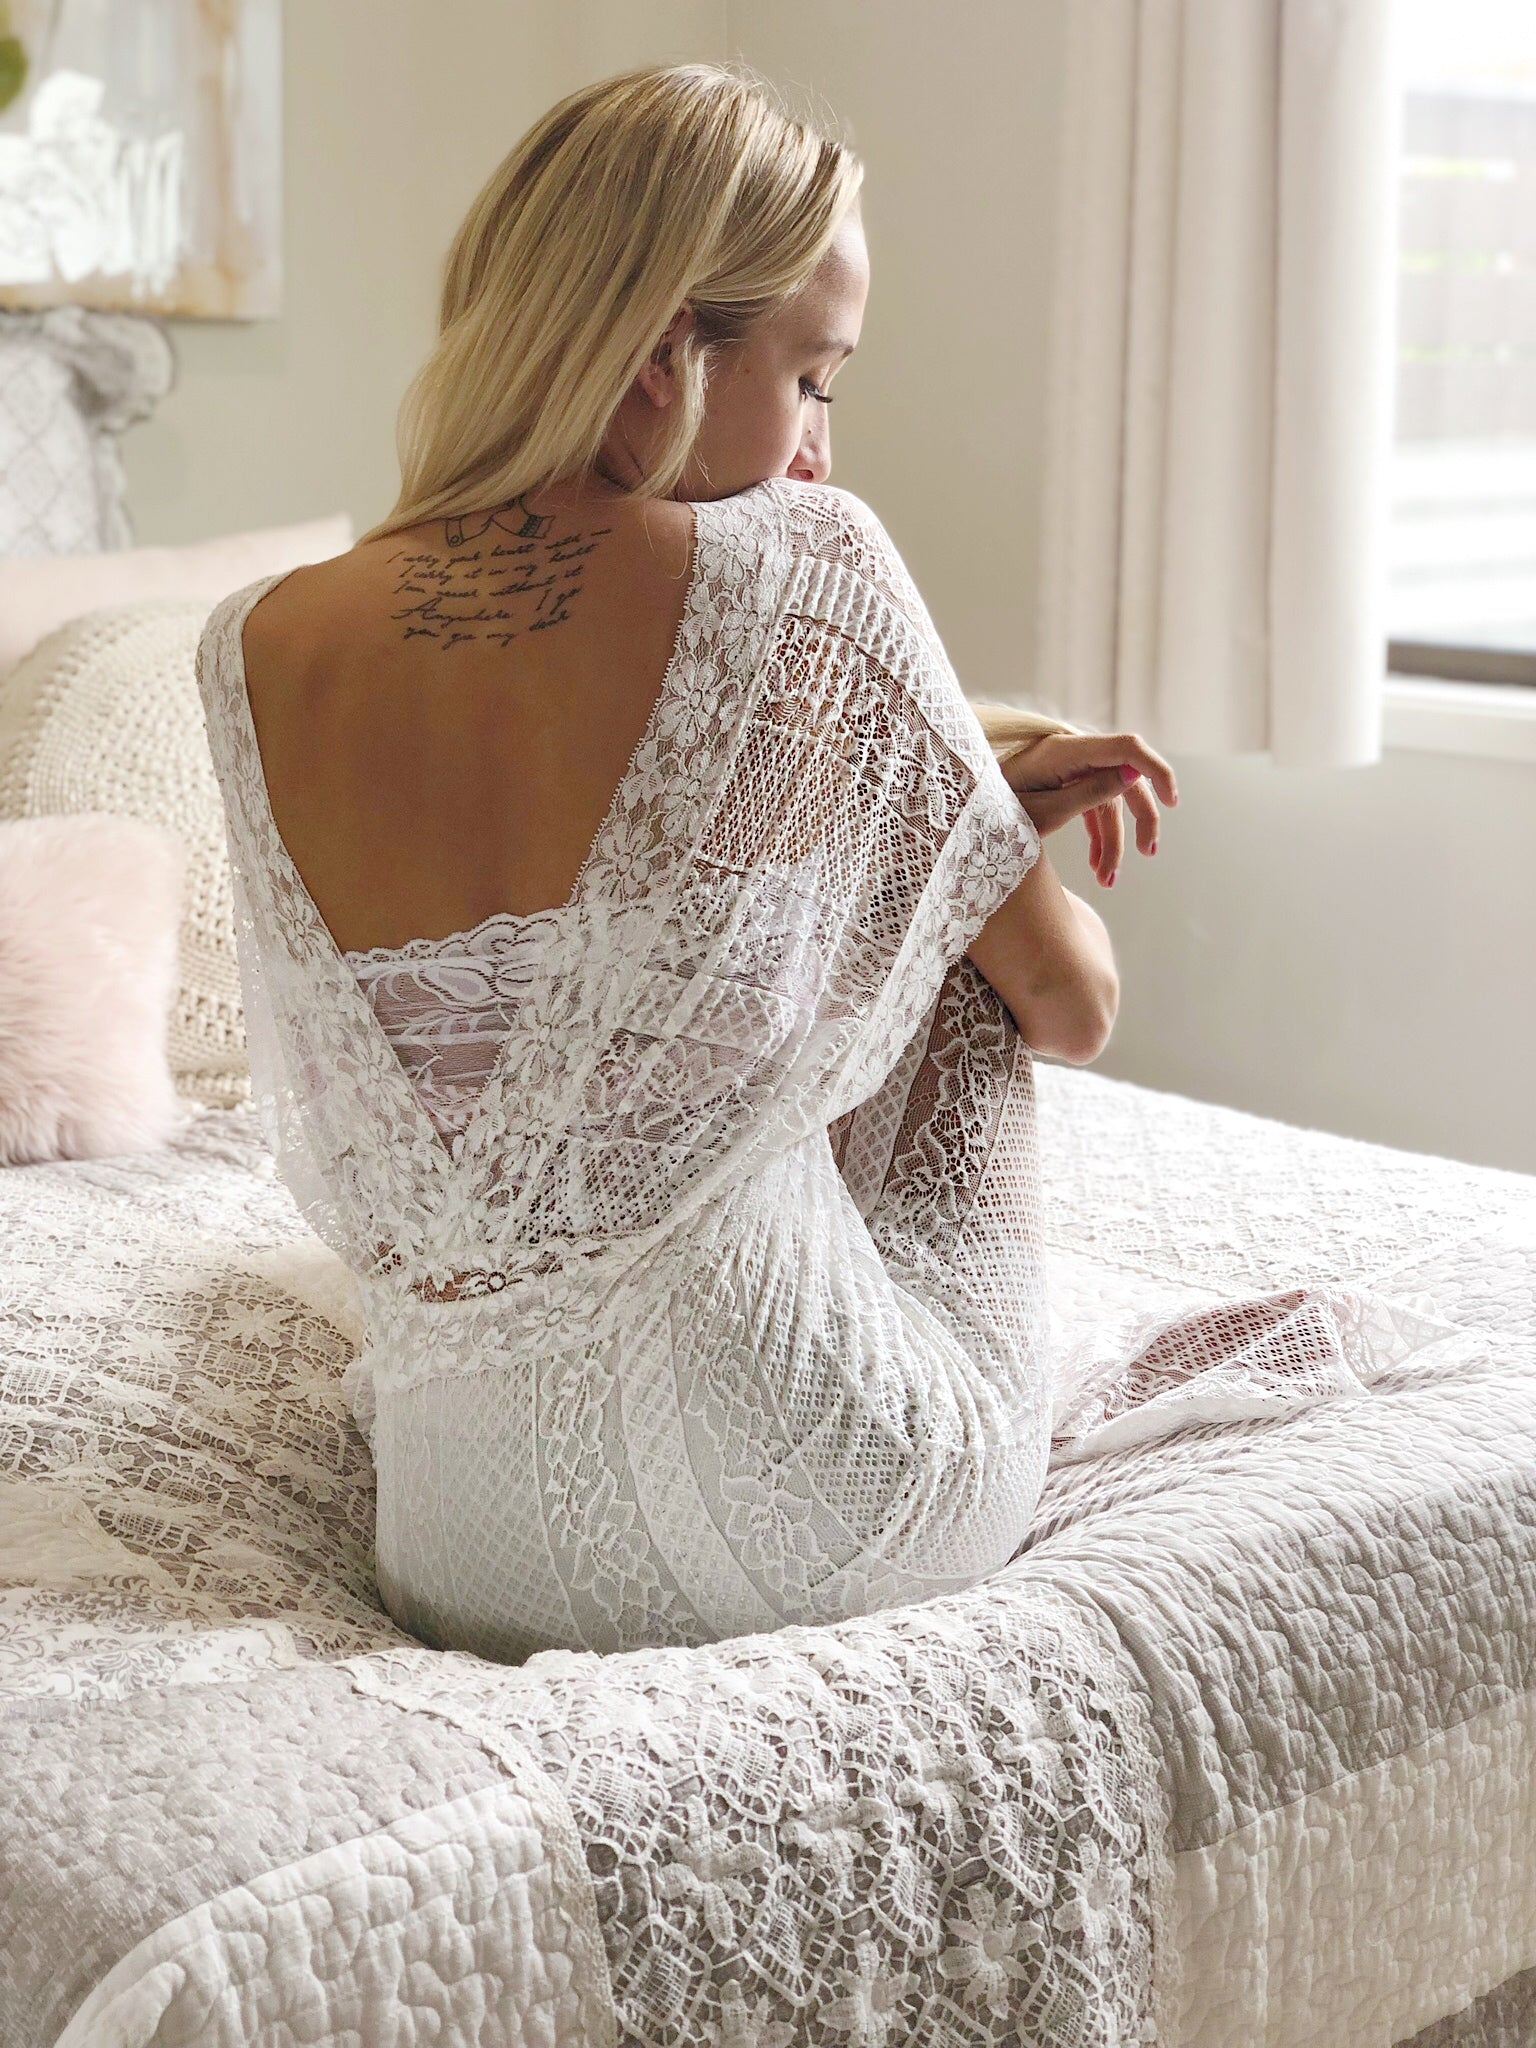 Celine White - Purity Lace Designs